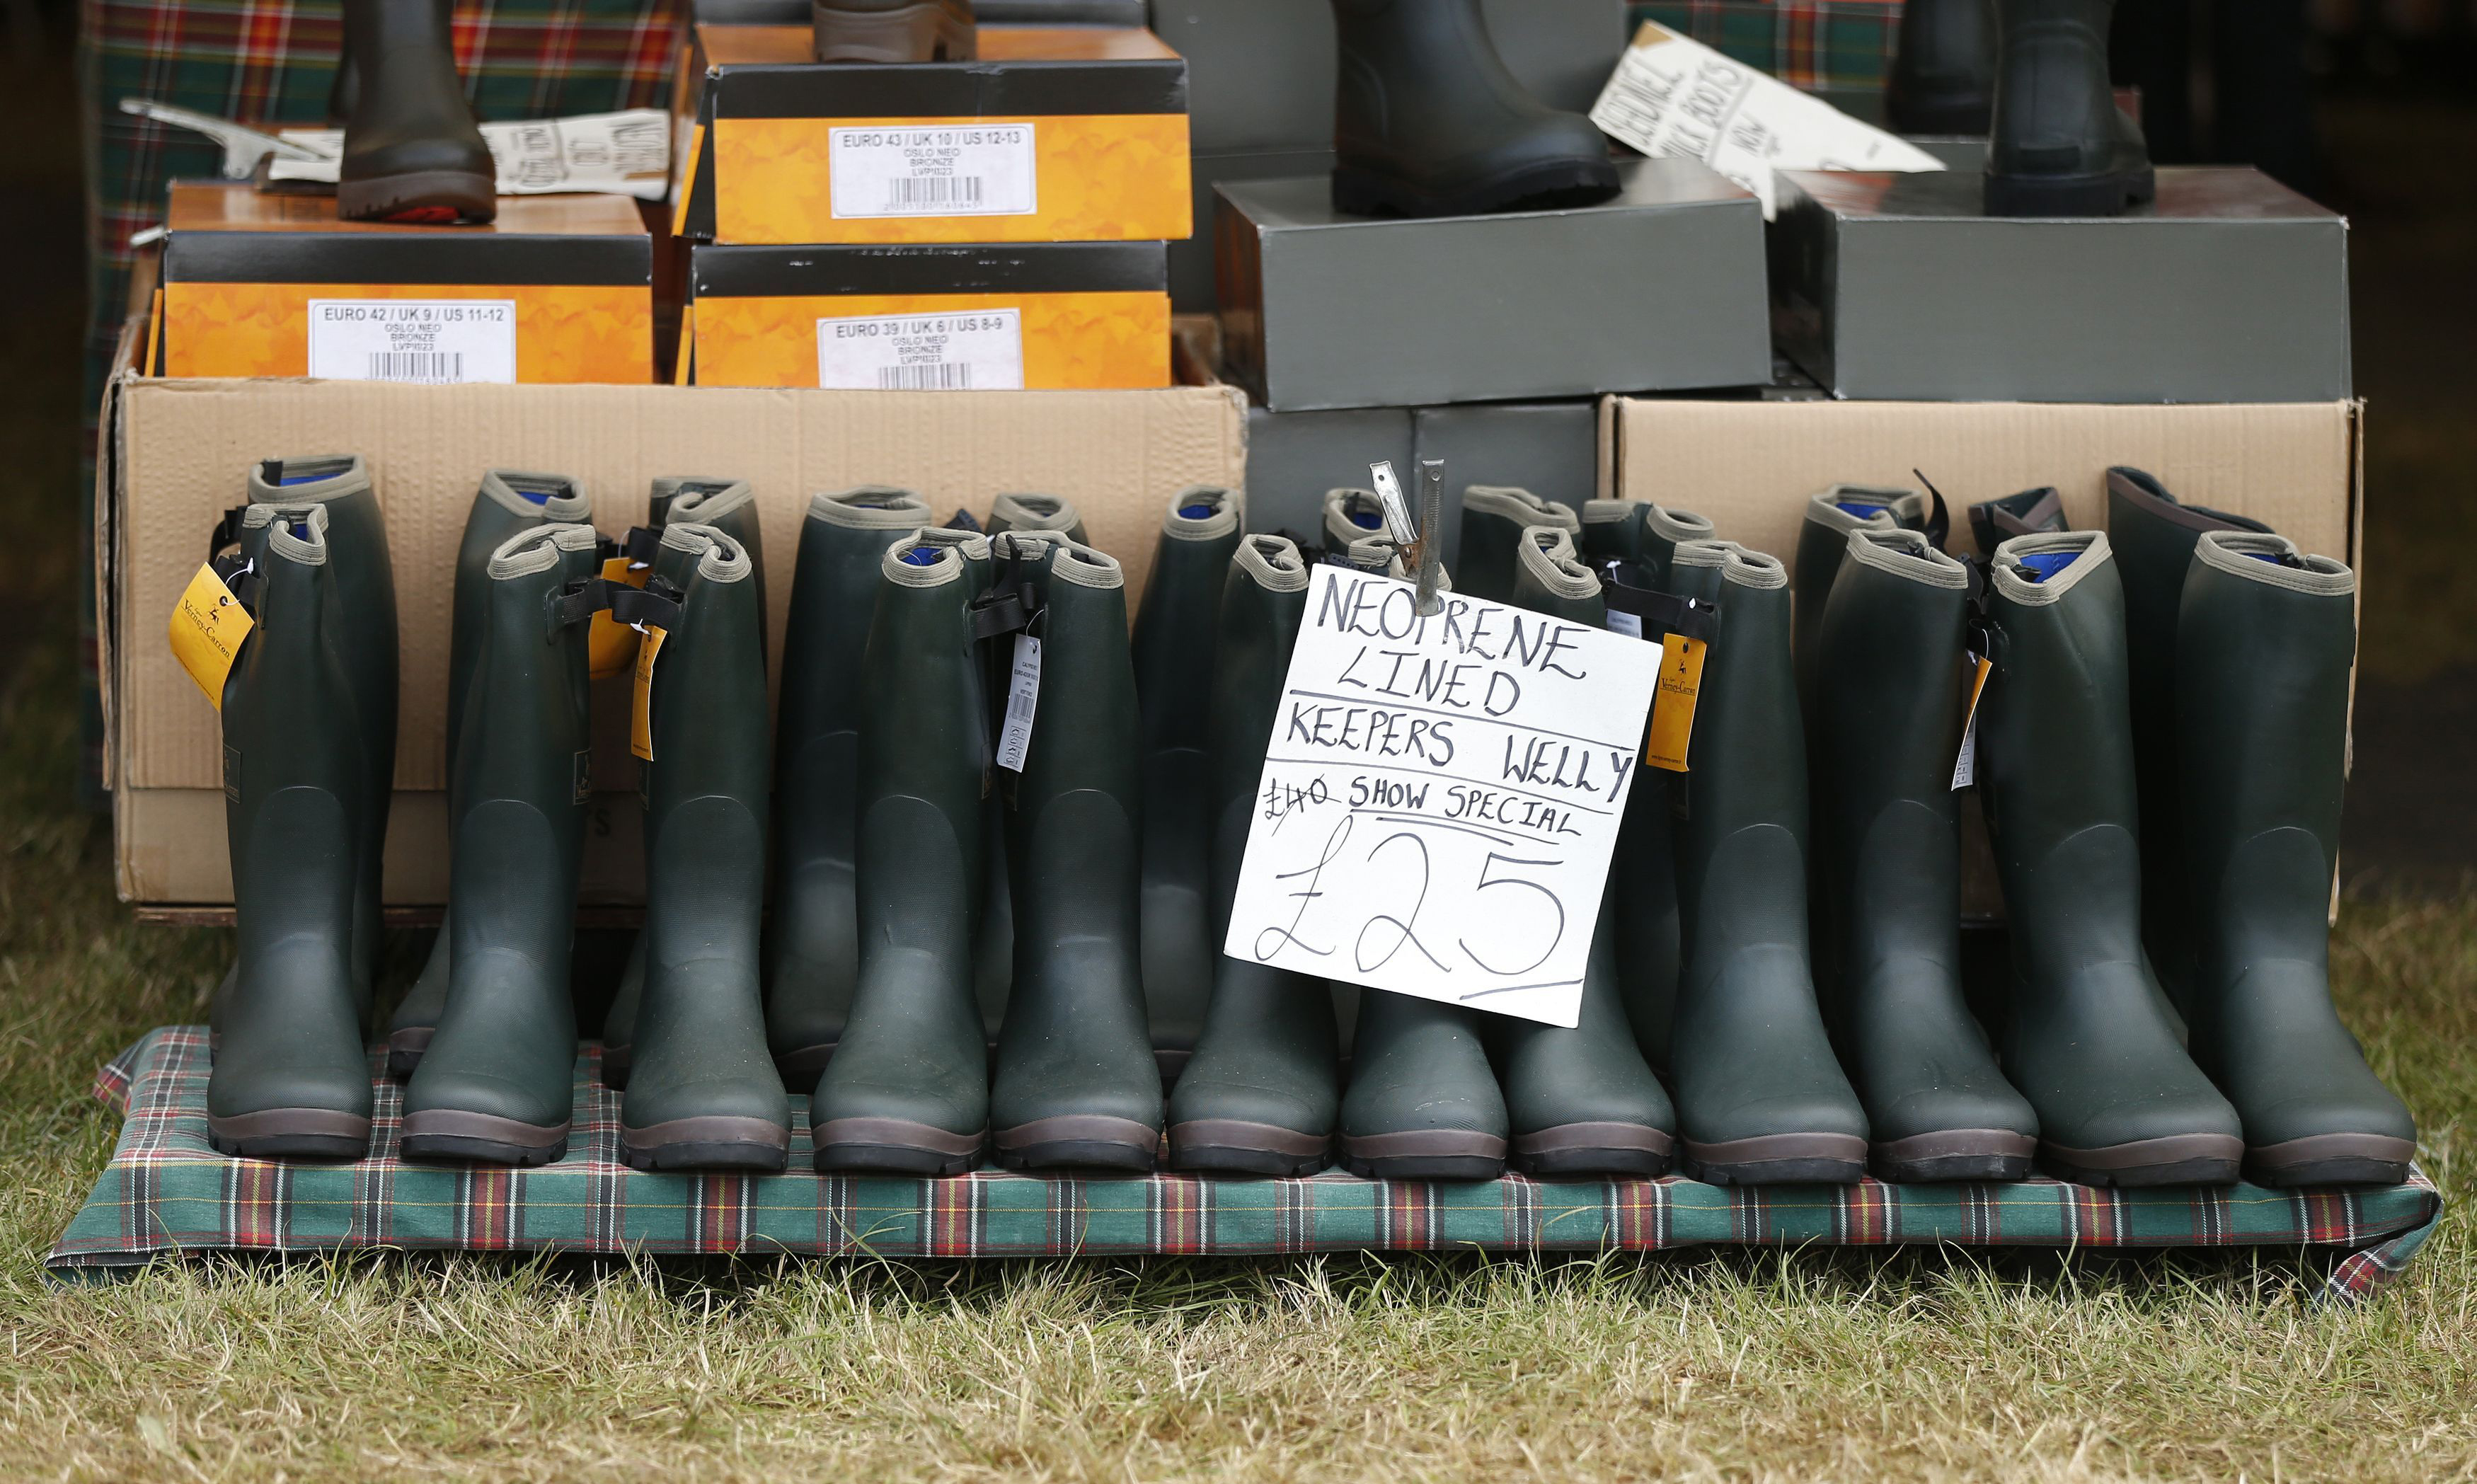 Wellington boots on sale during the Country Landowners' Association Gamefair at Harewood House, West Yorkshire, England on July 31, 2015.